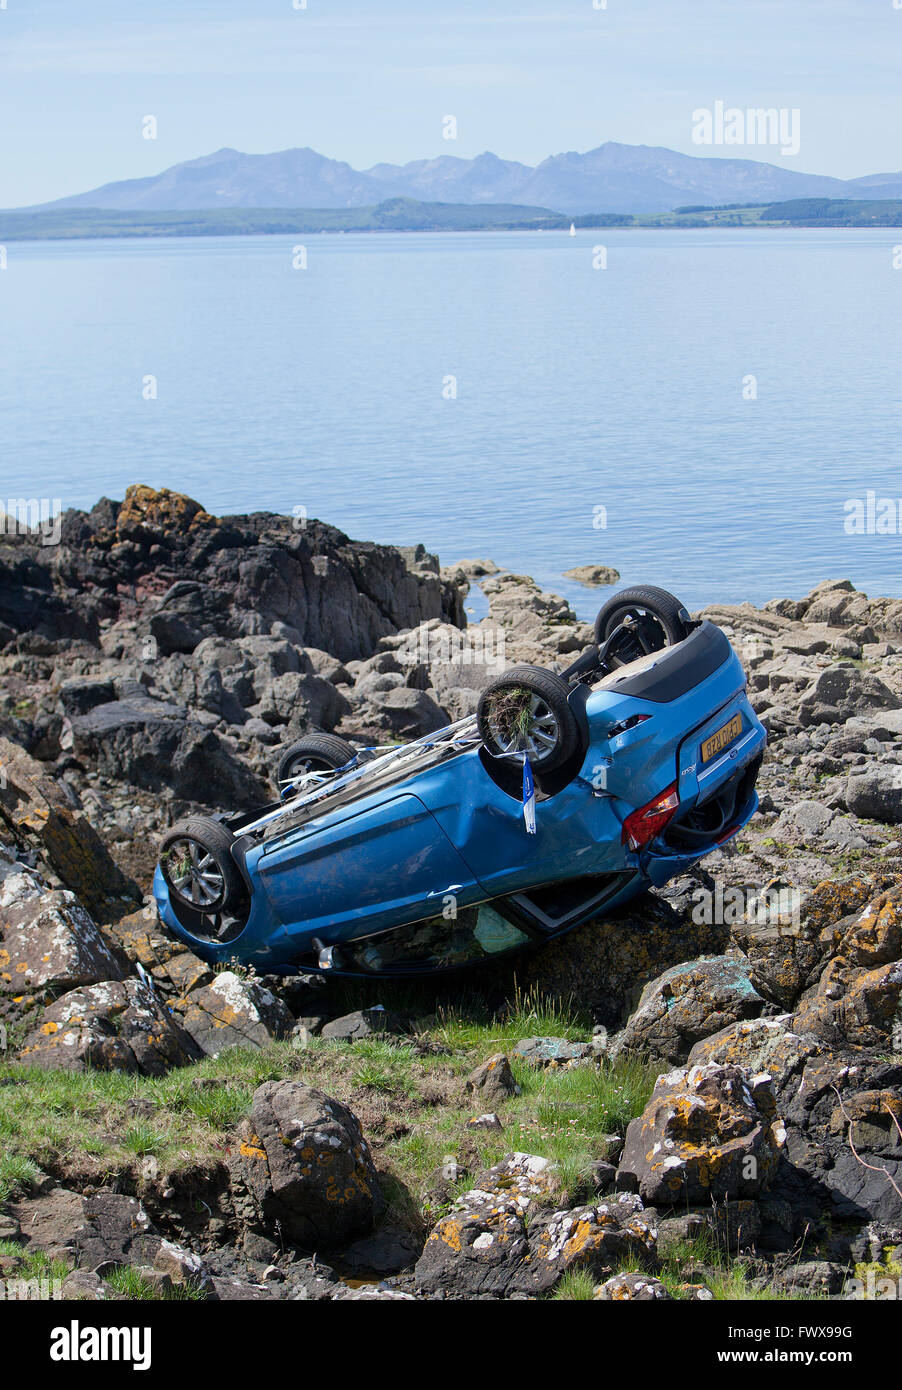 An overturned car crashed on rocks by the sea. - Stock Image